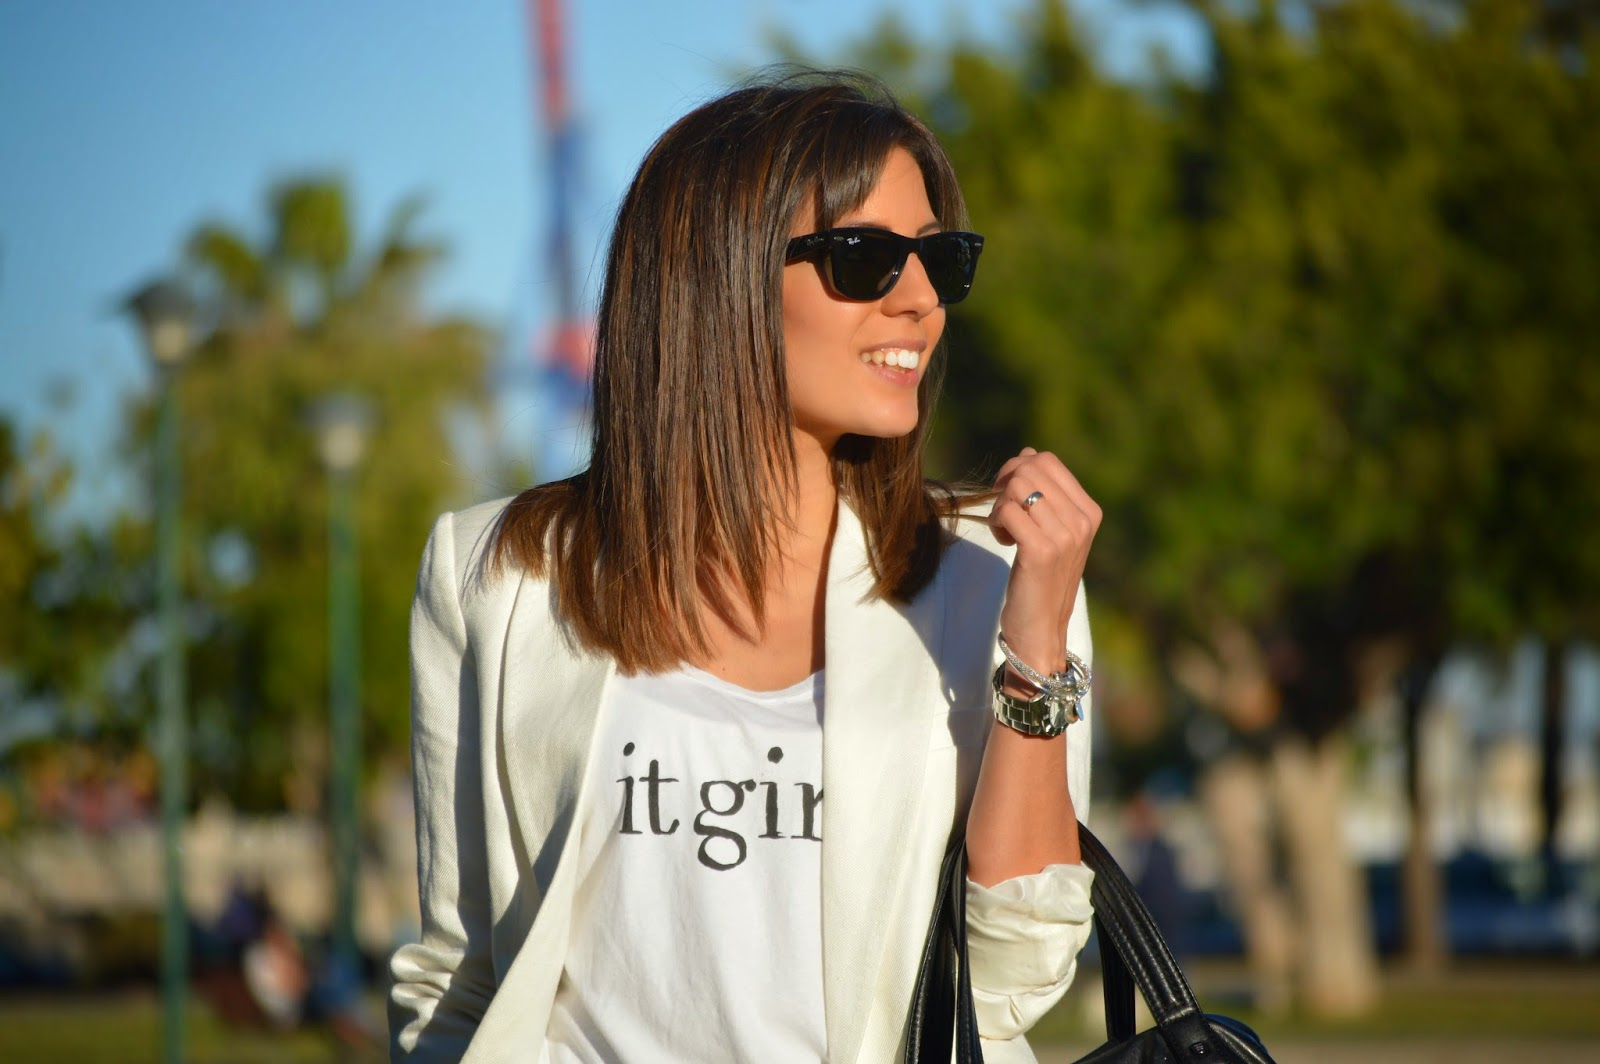 street style style fashion cristina style fashion blogger malagueña blogger malagueña outfit look mango zara swag stylish styles moda mood inspiration  beauty lovely me girl  malaga trend